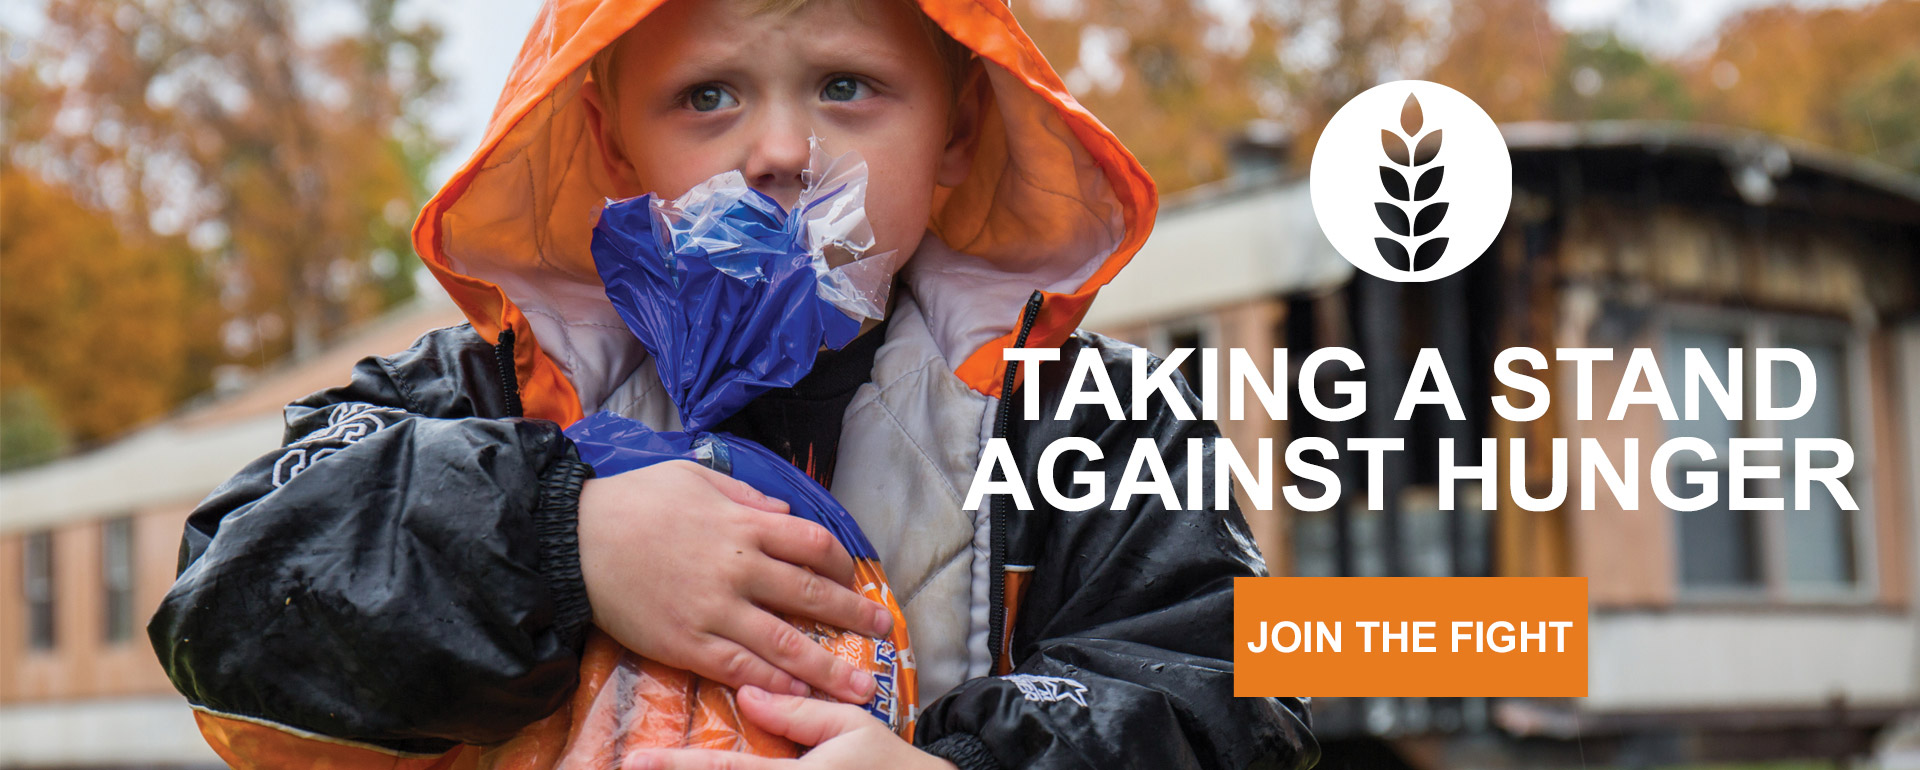 Taking a Stand Against Hunger - Join the Fight